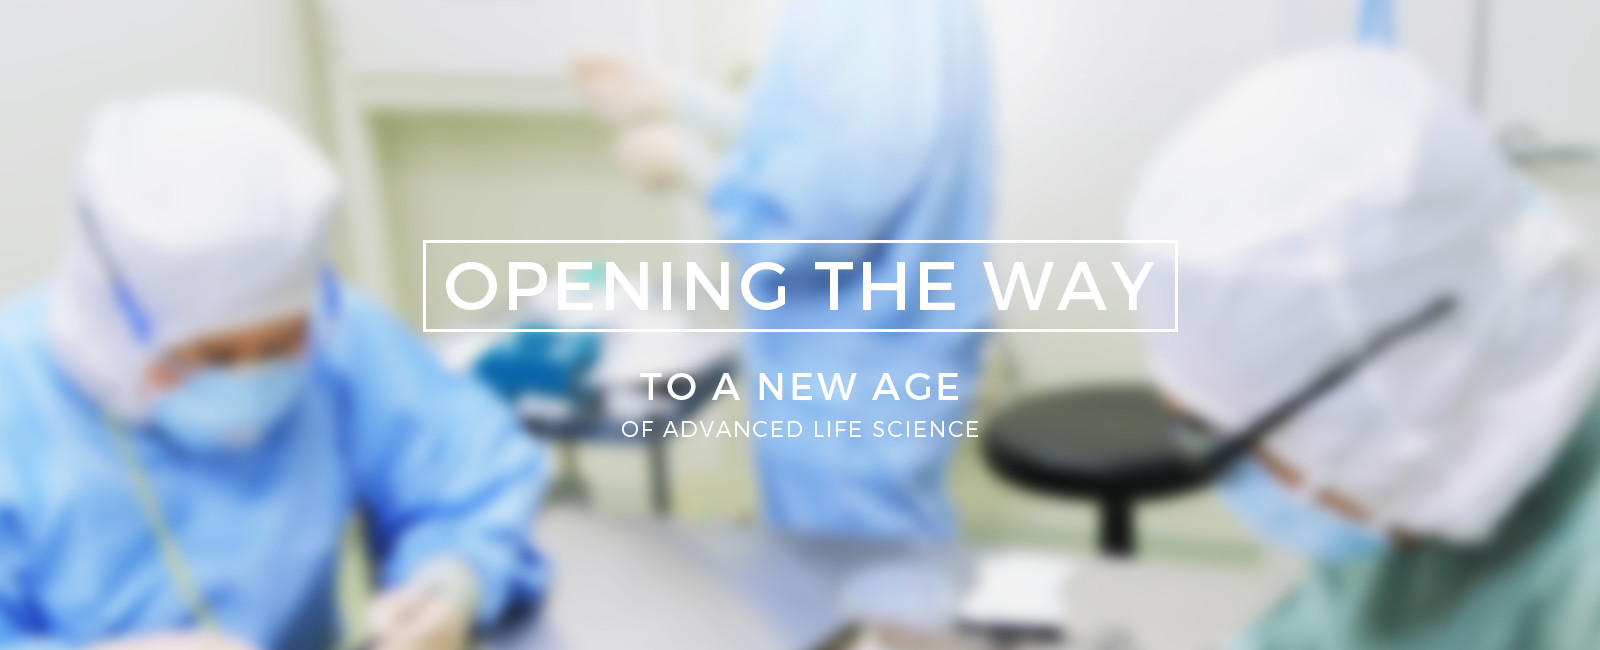 OPENING THE WAY TO A NEW AGE OF ADVANCED LIFE SCIENCE